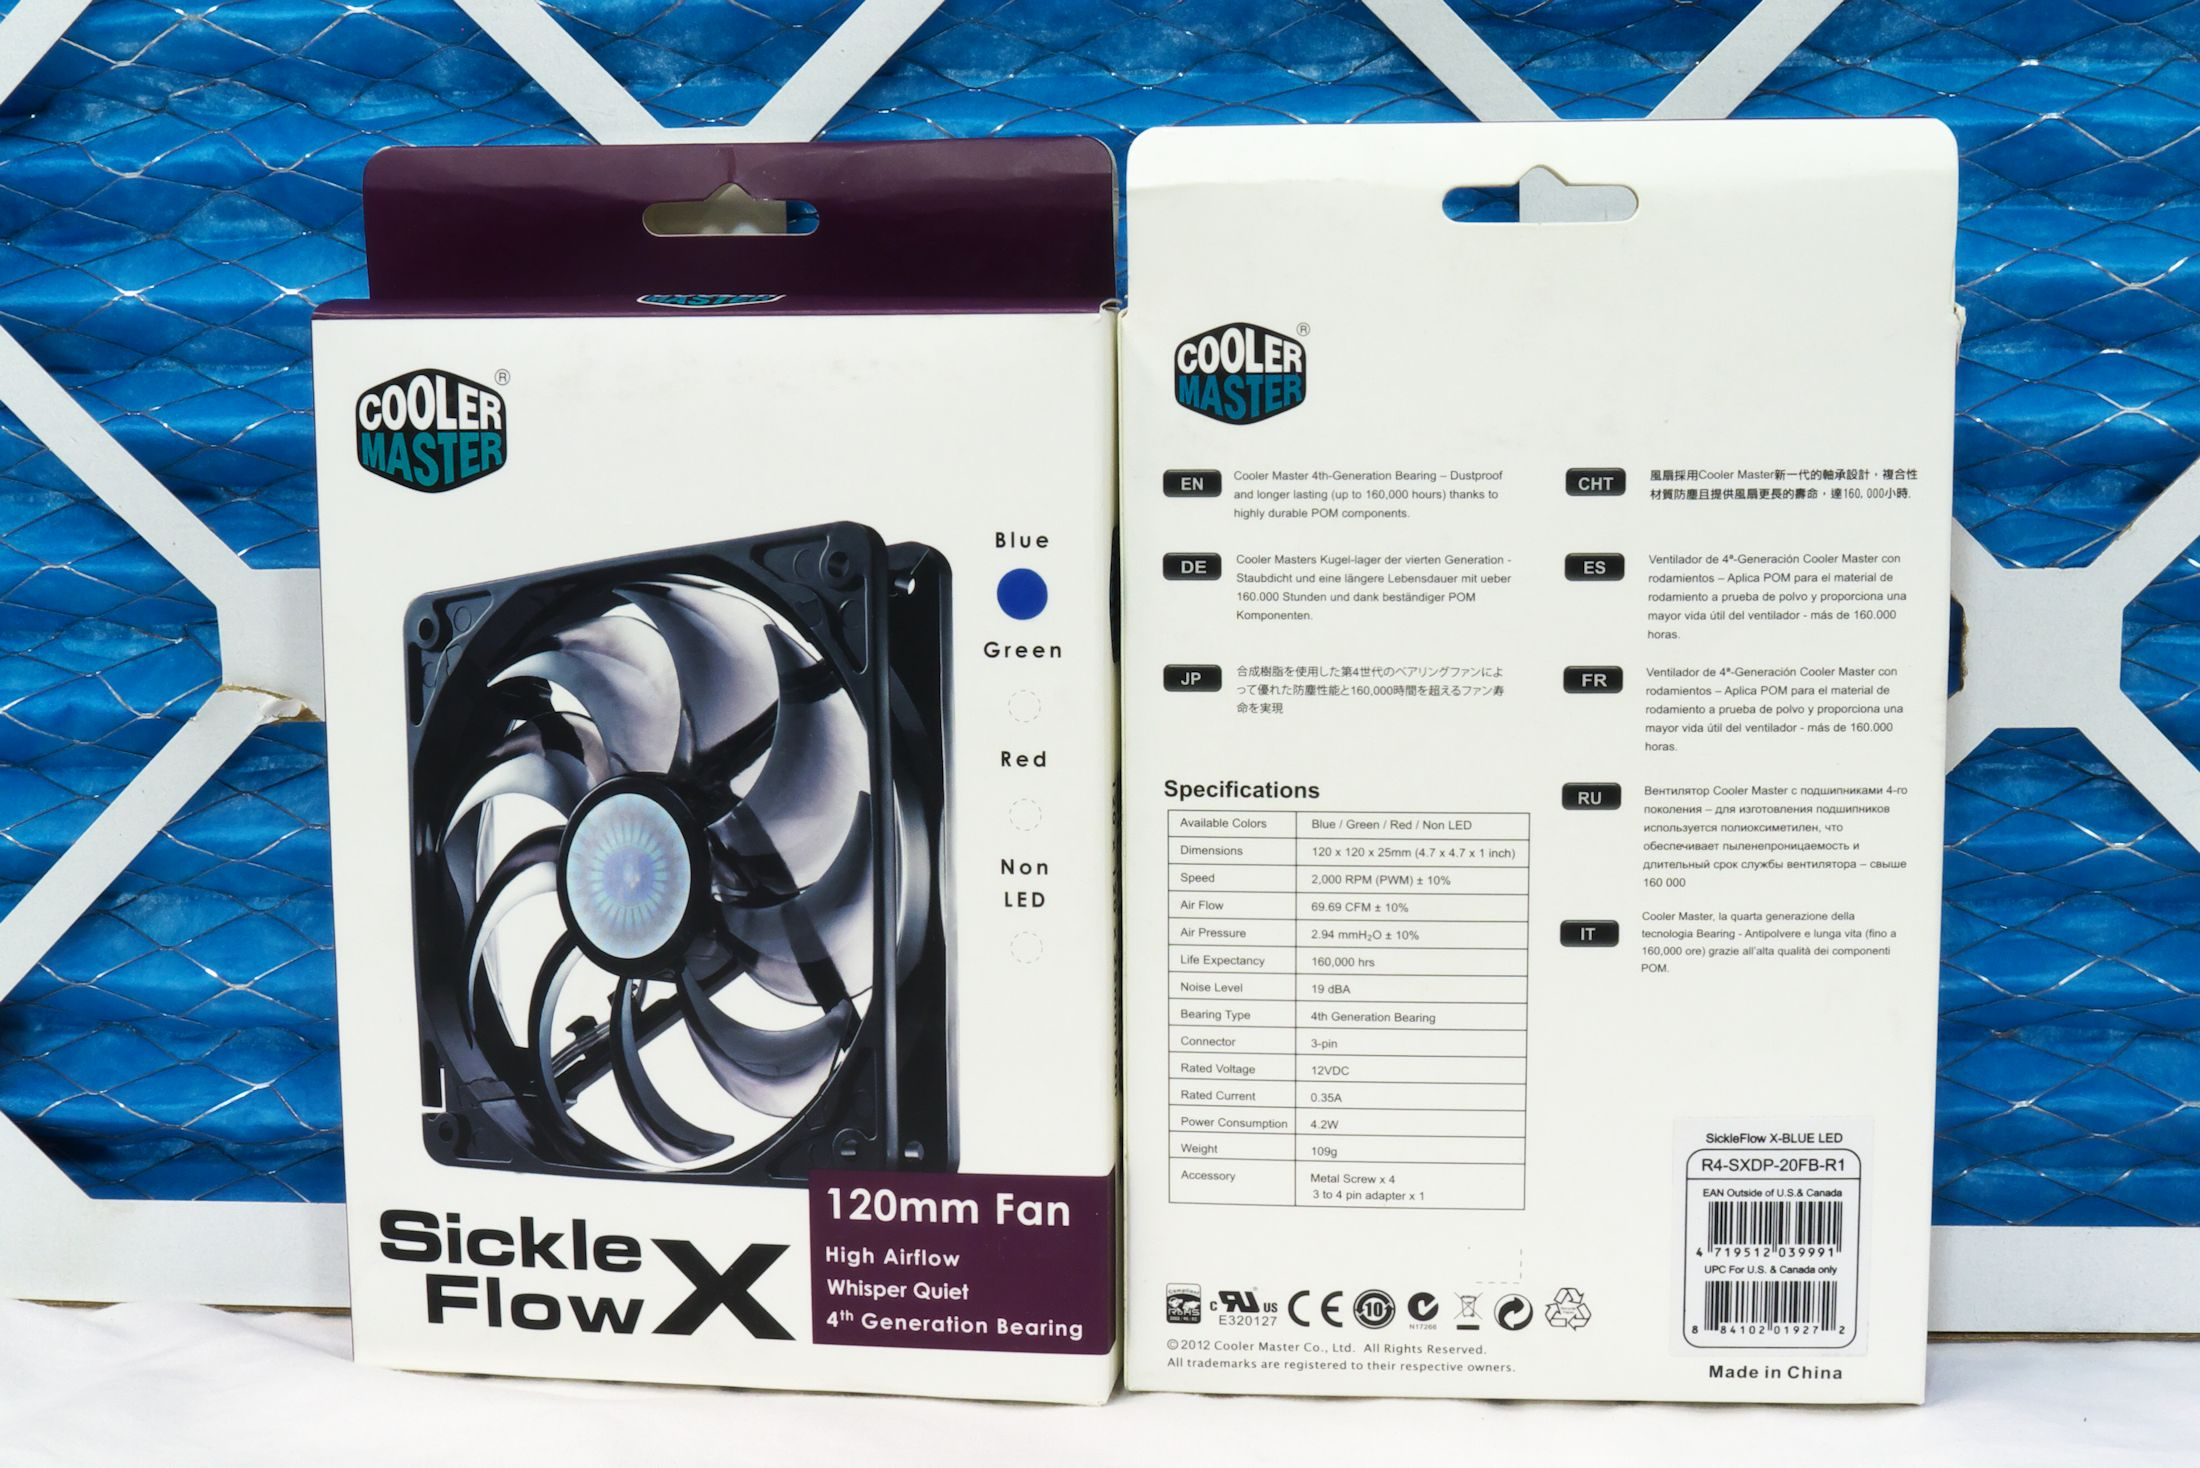 Cooler Master Sickle Flow X box from both sides. The box contains the fan and a 4-pin Molex adapter.